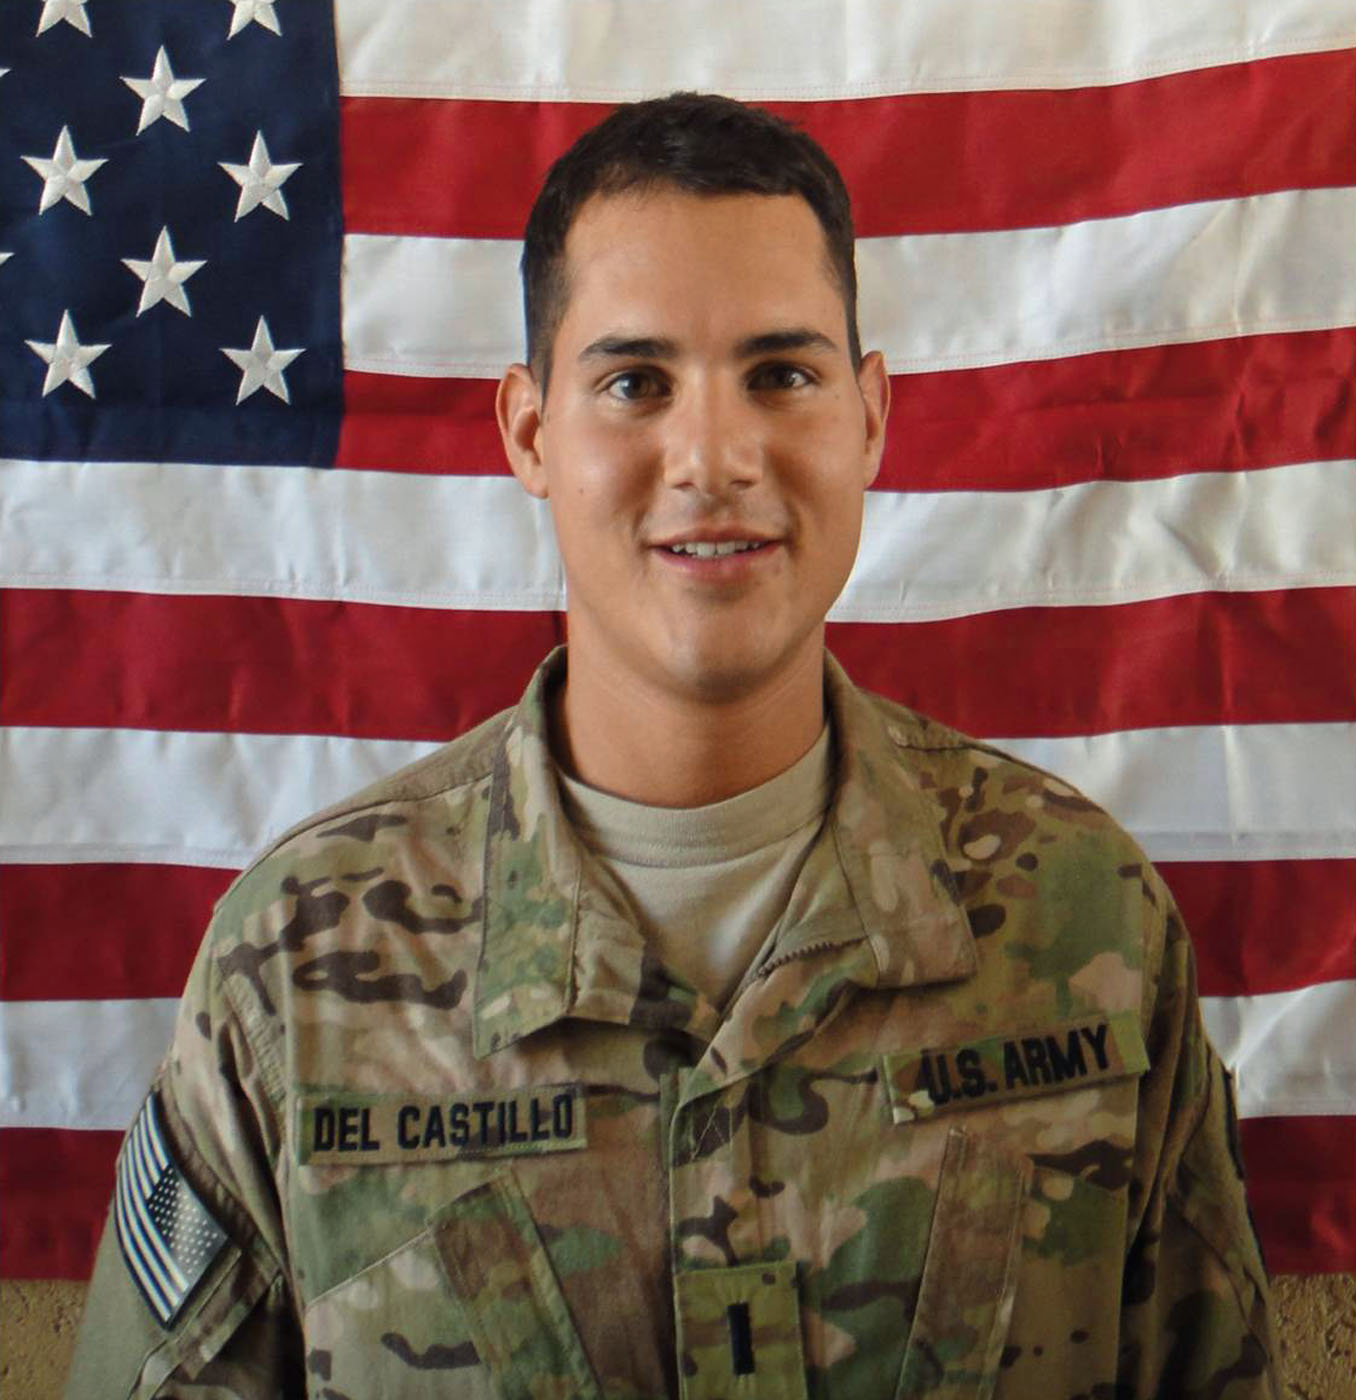 U.S. Army First Lieutenant Dimitri Del Castillo, 24, of Tampa, Florida, assigned to the 2nd Battalion, 35th Infantry Regiment, 3rd Brigade Combat Team, 25th Infantry Division, based in Schofield Barracks, Hawaii, died on June 25, 2011, in Kunar province, Afghanistan, from wounds suffered when enemy forces attacked his unit with small arms fire. He is survived by his wife Katie, his parents Mr. and Mrs. Carlos E. Del Castillo, his brother Carlos Andres and sister Anna.